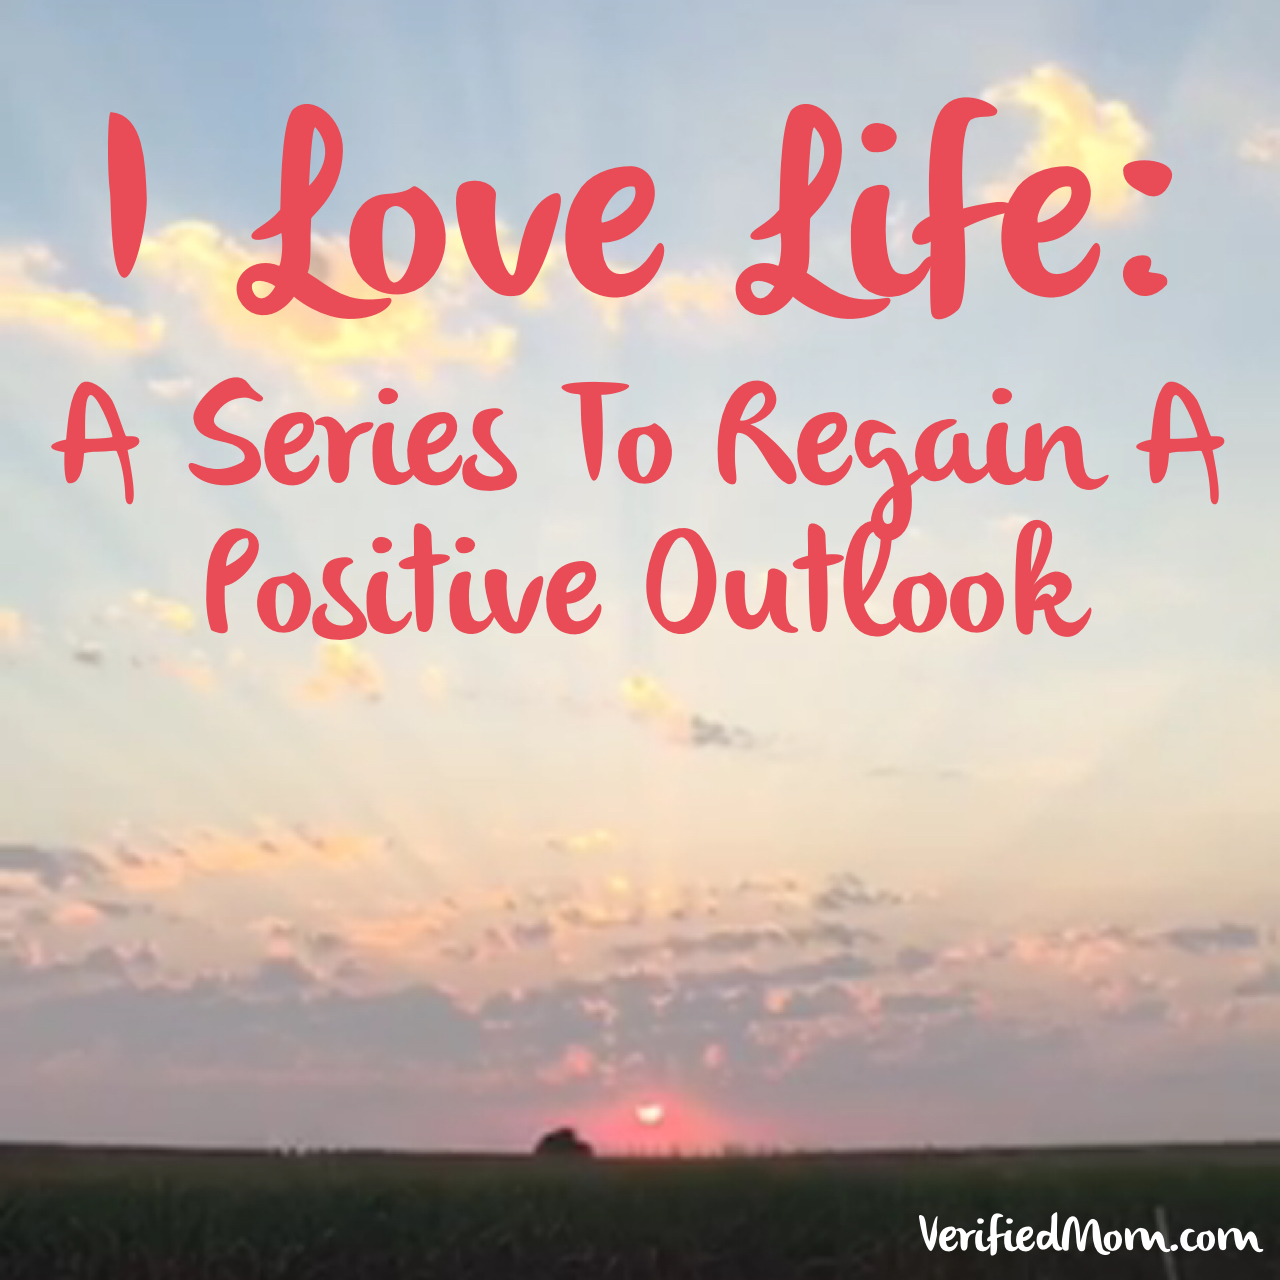 I love life; a series to regain a positive outlook